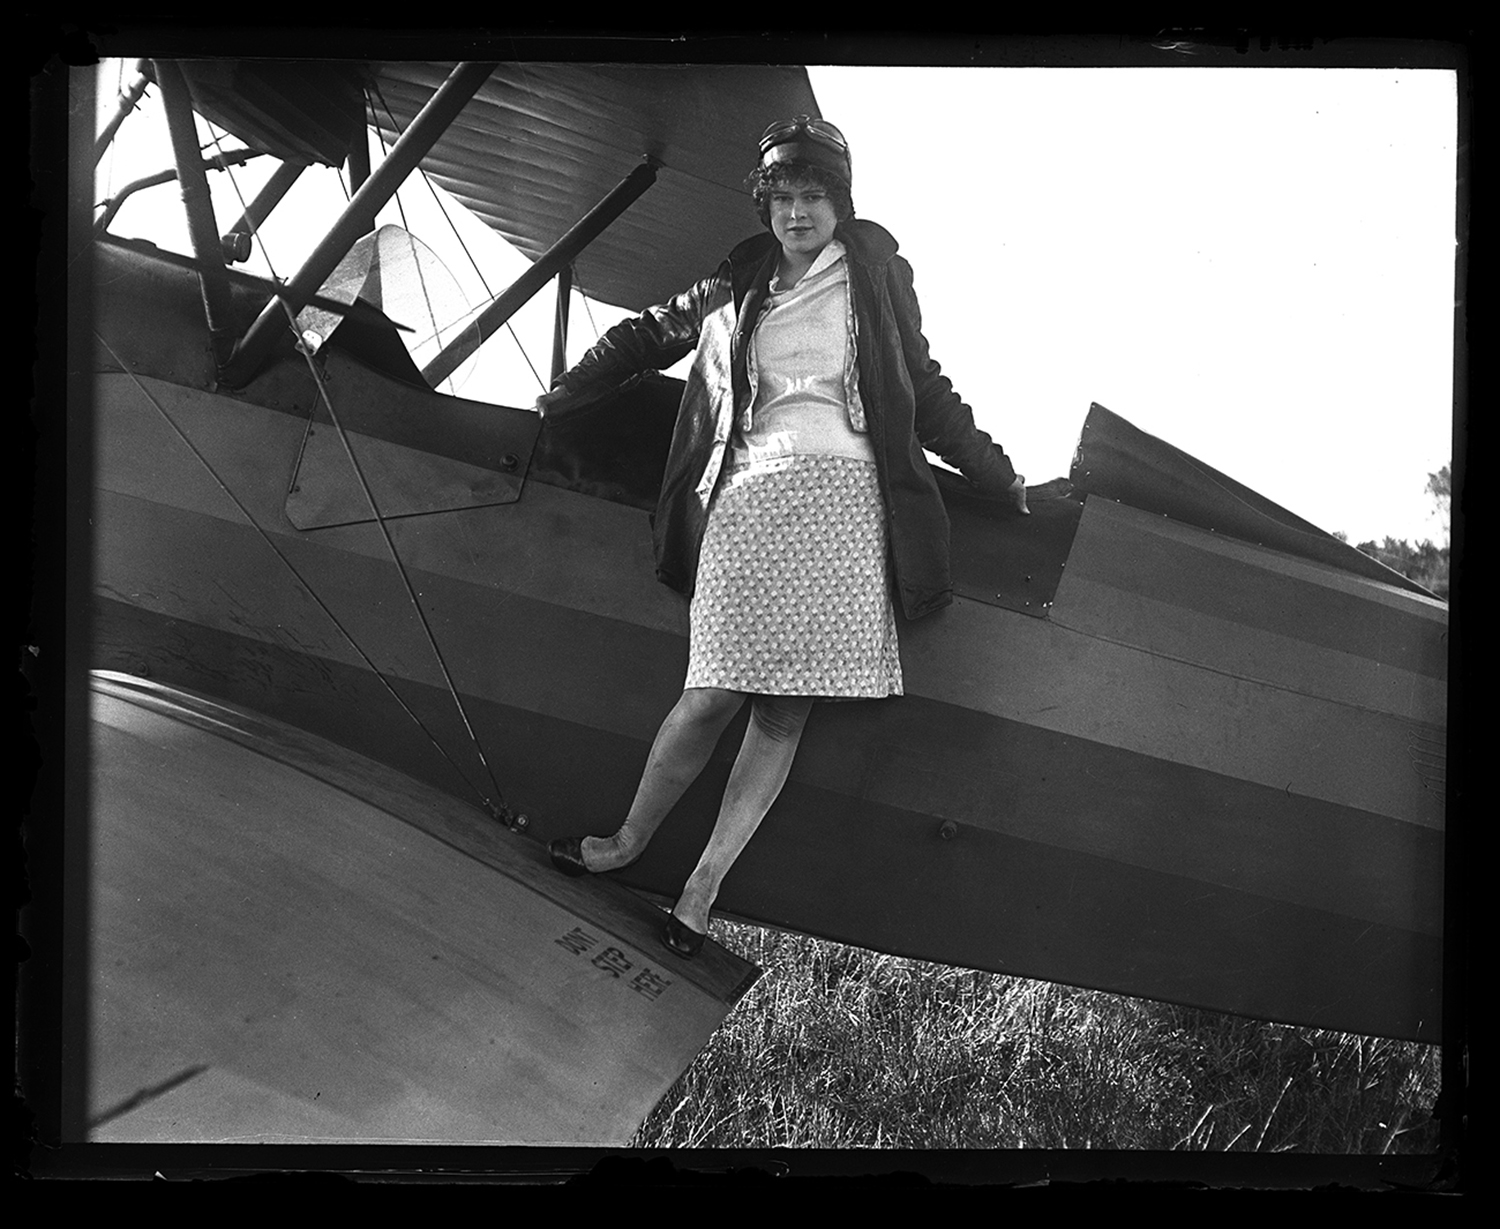 """Elizabeth Skadden was 18 years old and wanted to become an endurance flyer when she was featured in the Illinois State Journal on October 6, 1929. Her dreams may have been inspired by Charles Lindbergh, who just two years earlier made his famous non-stop flight across the Atlantic. She took flying lessons in the hopes of becoming famous herself. """"Just as soon as my chance comes, I hope to set a new endurance record for women flyers which will stand for a long, long time,"""" she told the Journal. File/The State Journal-Register."""